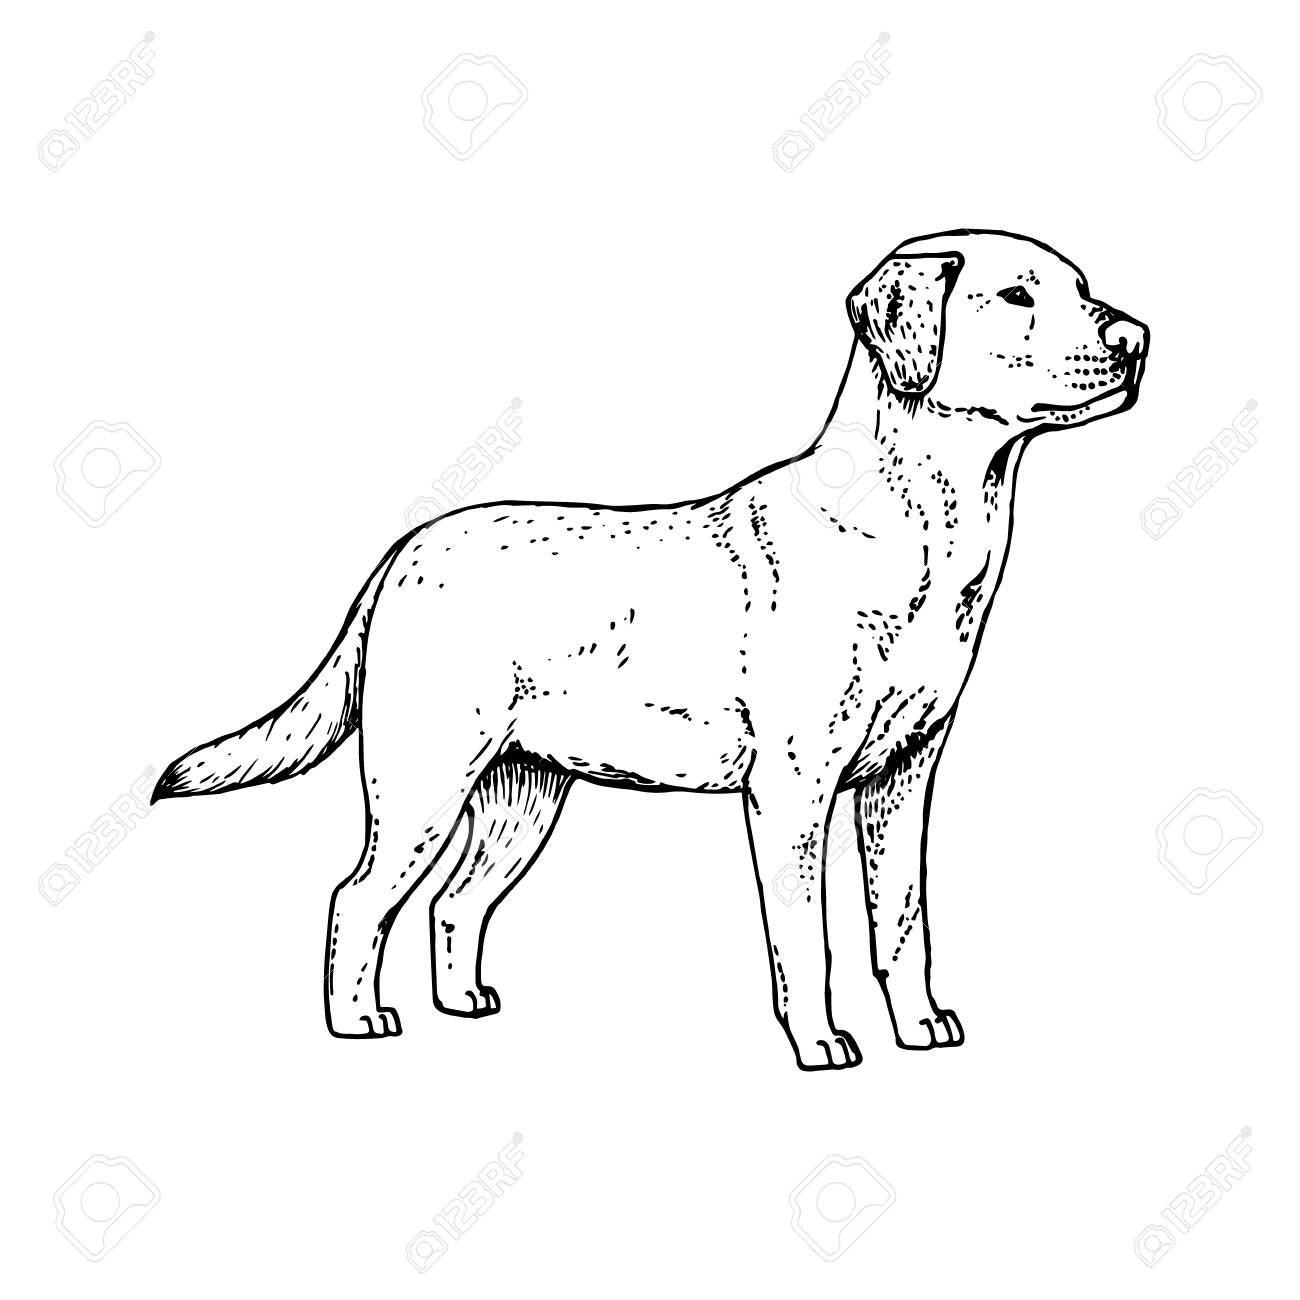 1300x1300 Hand Drawn Dog Labrador. Retro Realistic Animal Isolated. Vintage